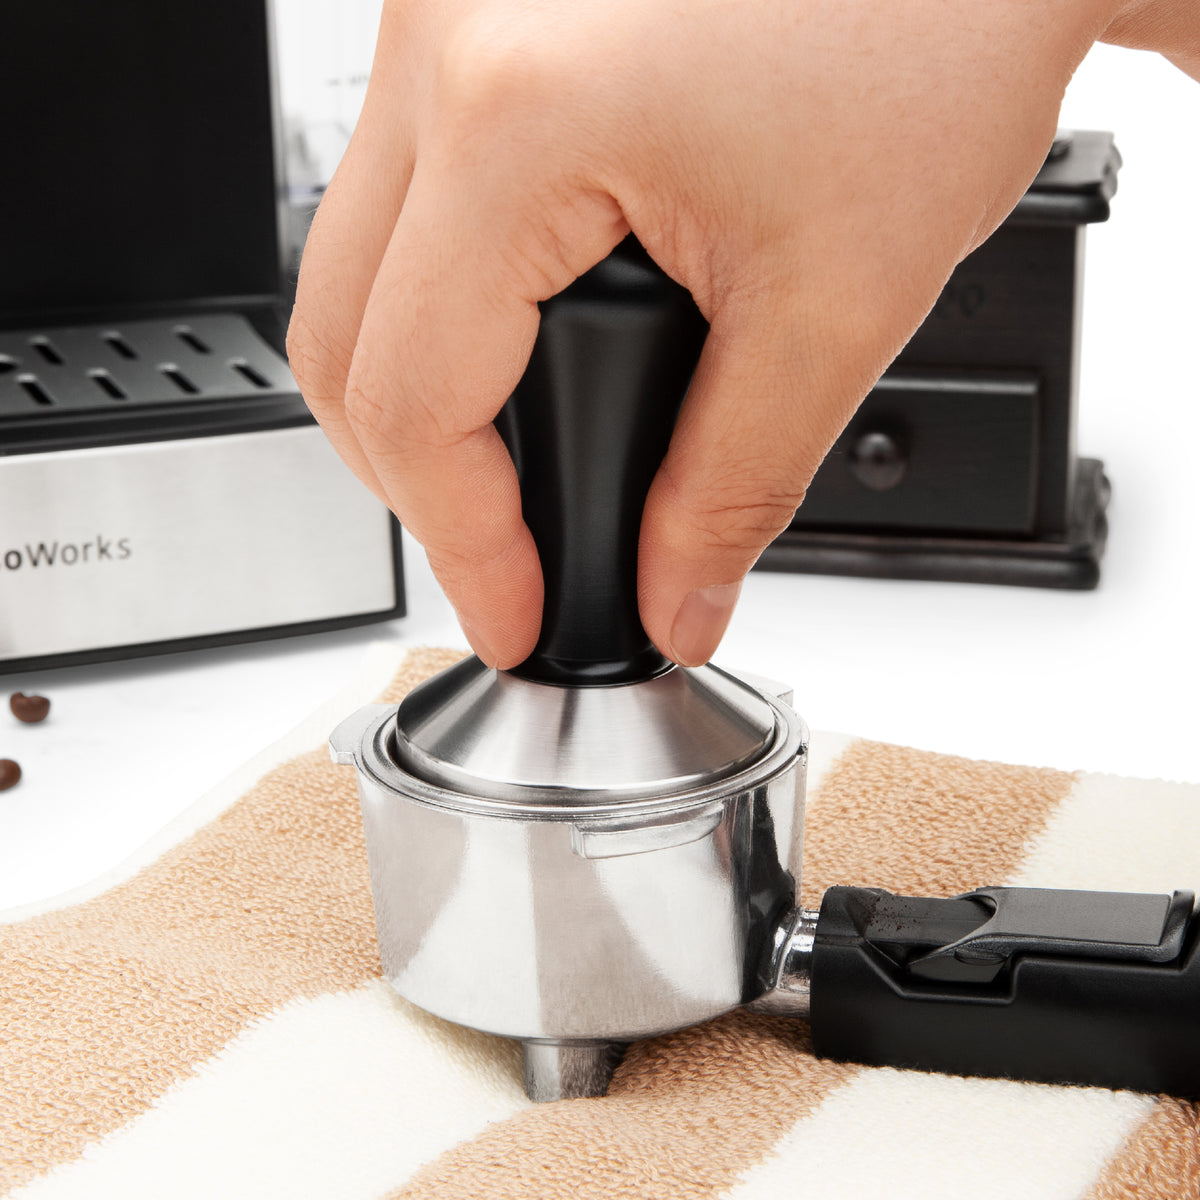 EspressoWorks Espresso Tamper Black expertly tamps in coffee grinds to make a puck for a balanced brew